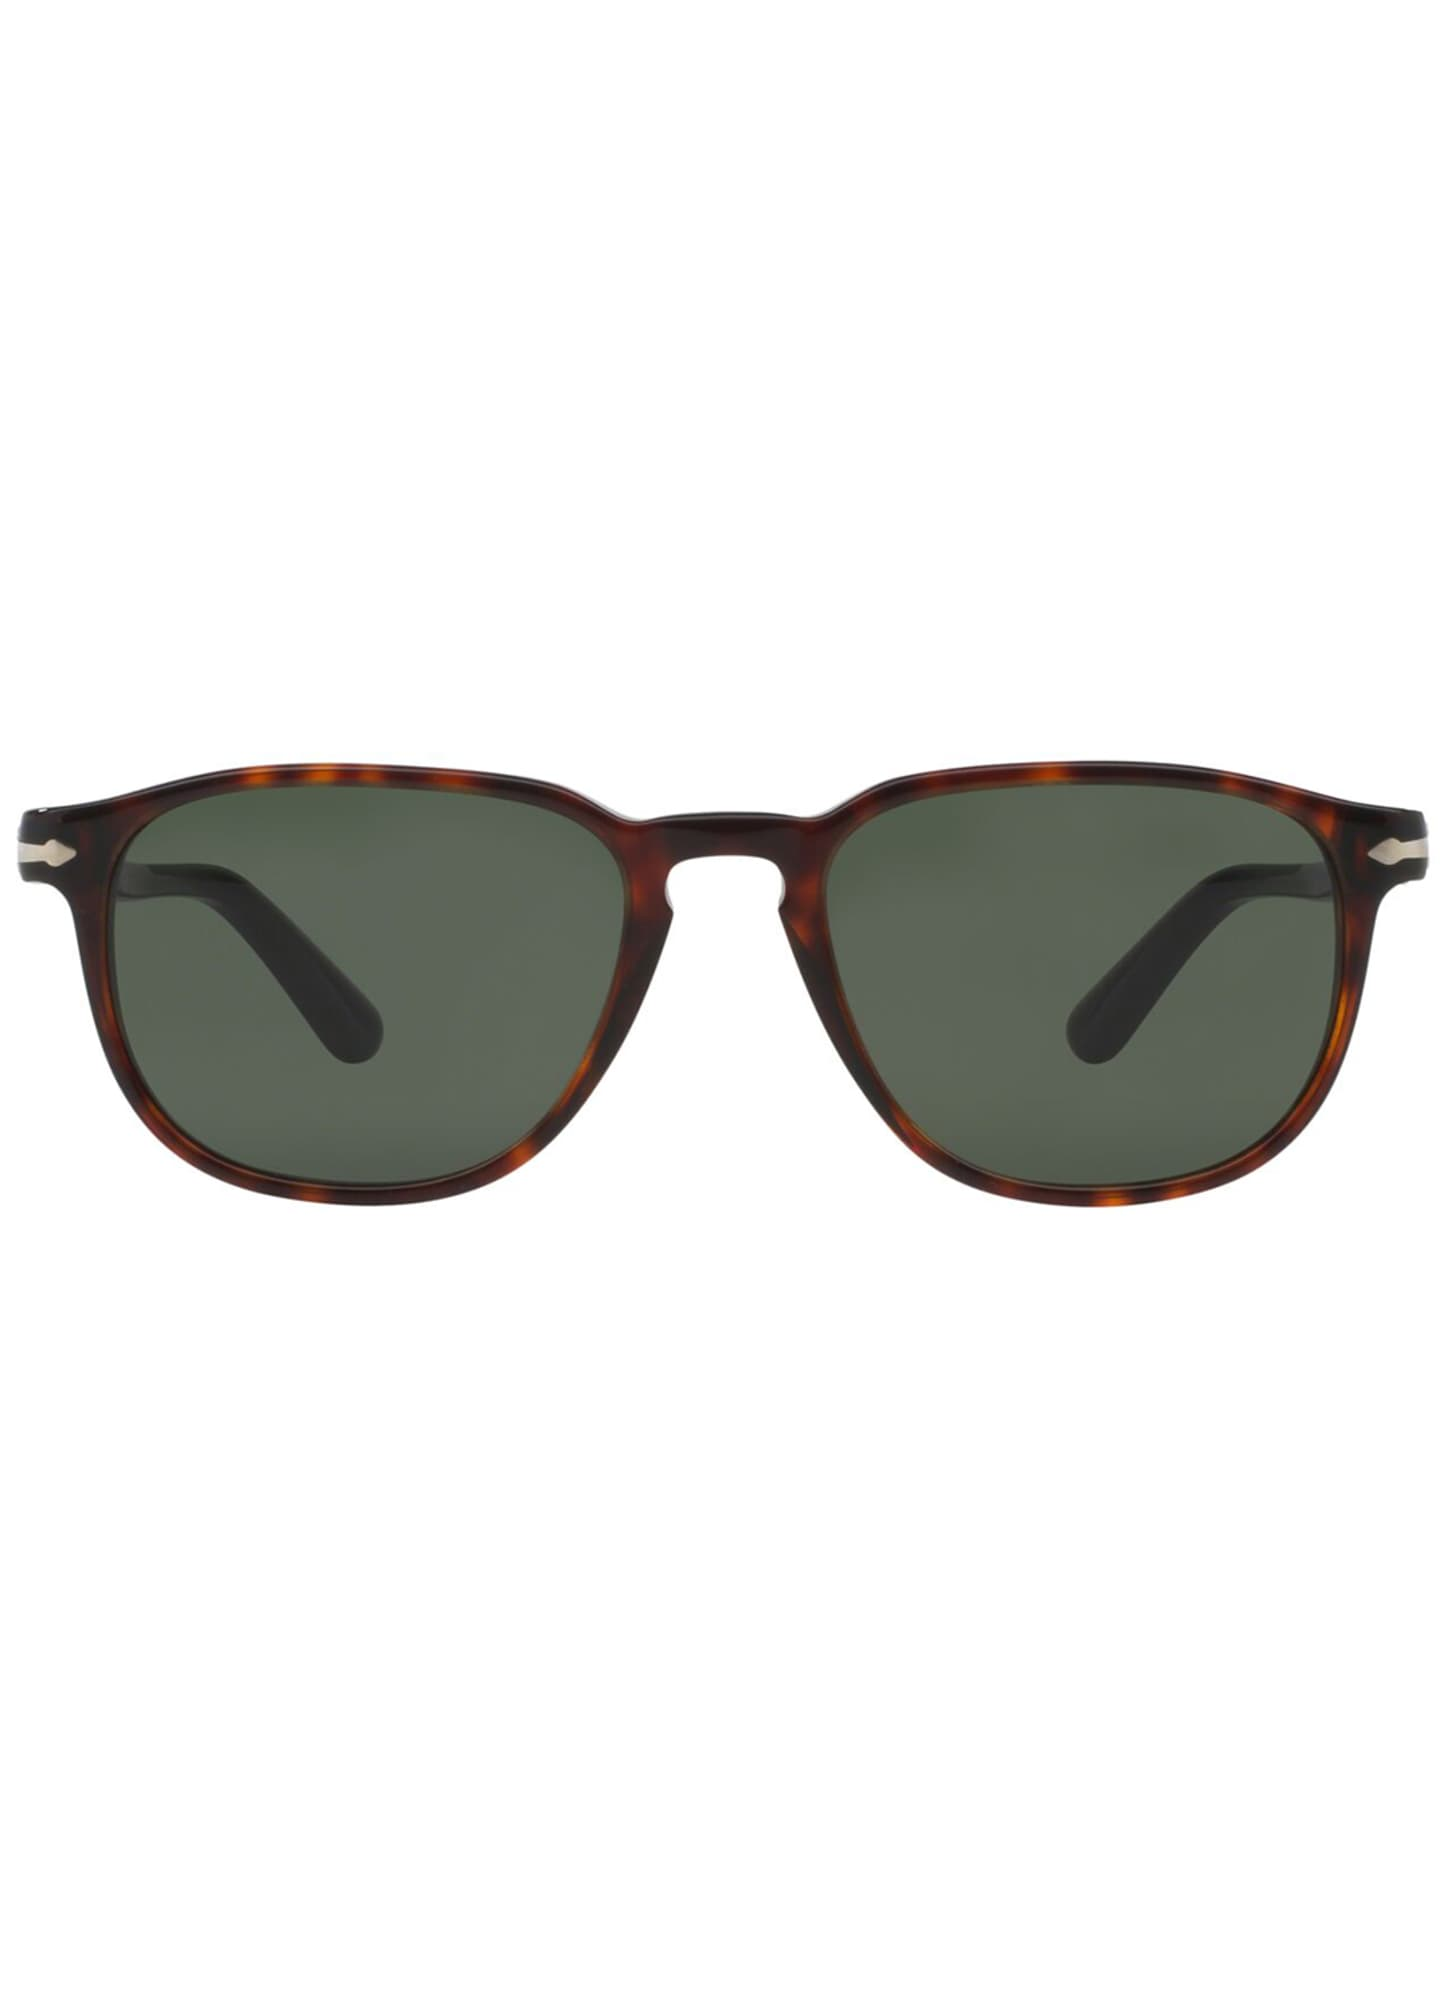 Image 2 of 2: Men's Square Patterned Acetate Sunglasses